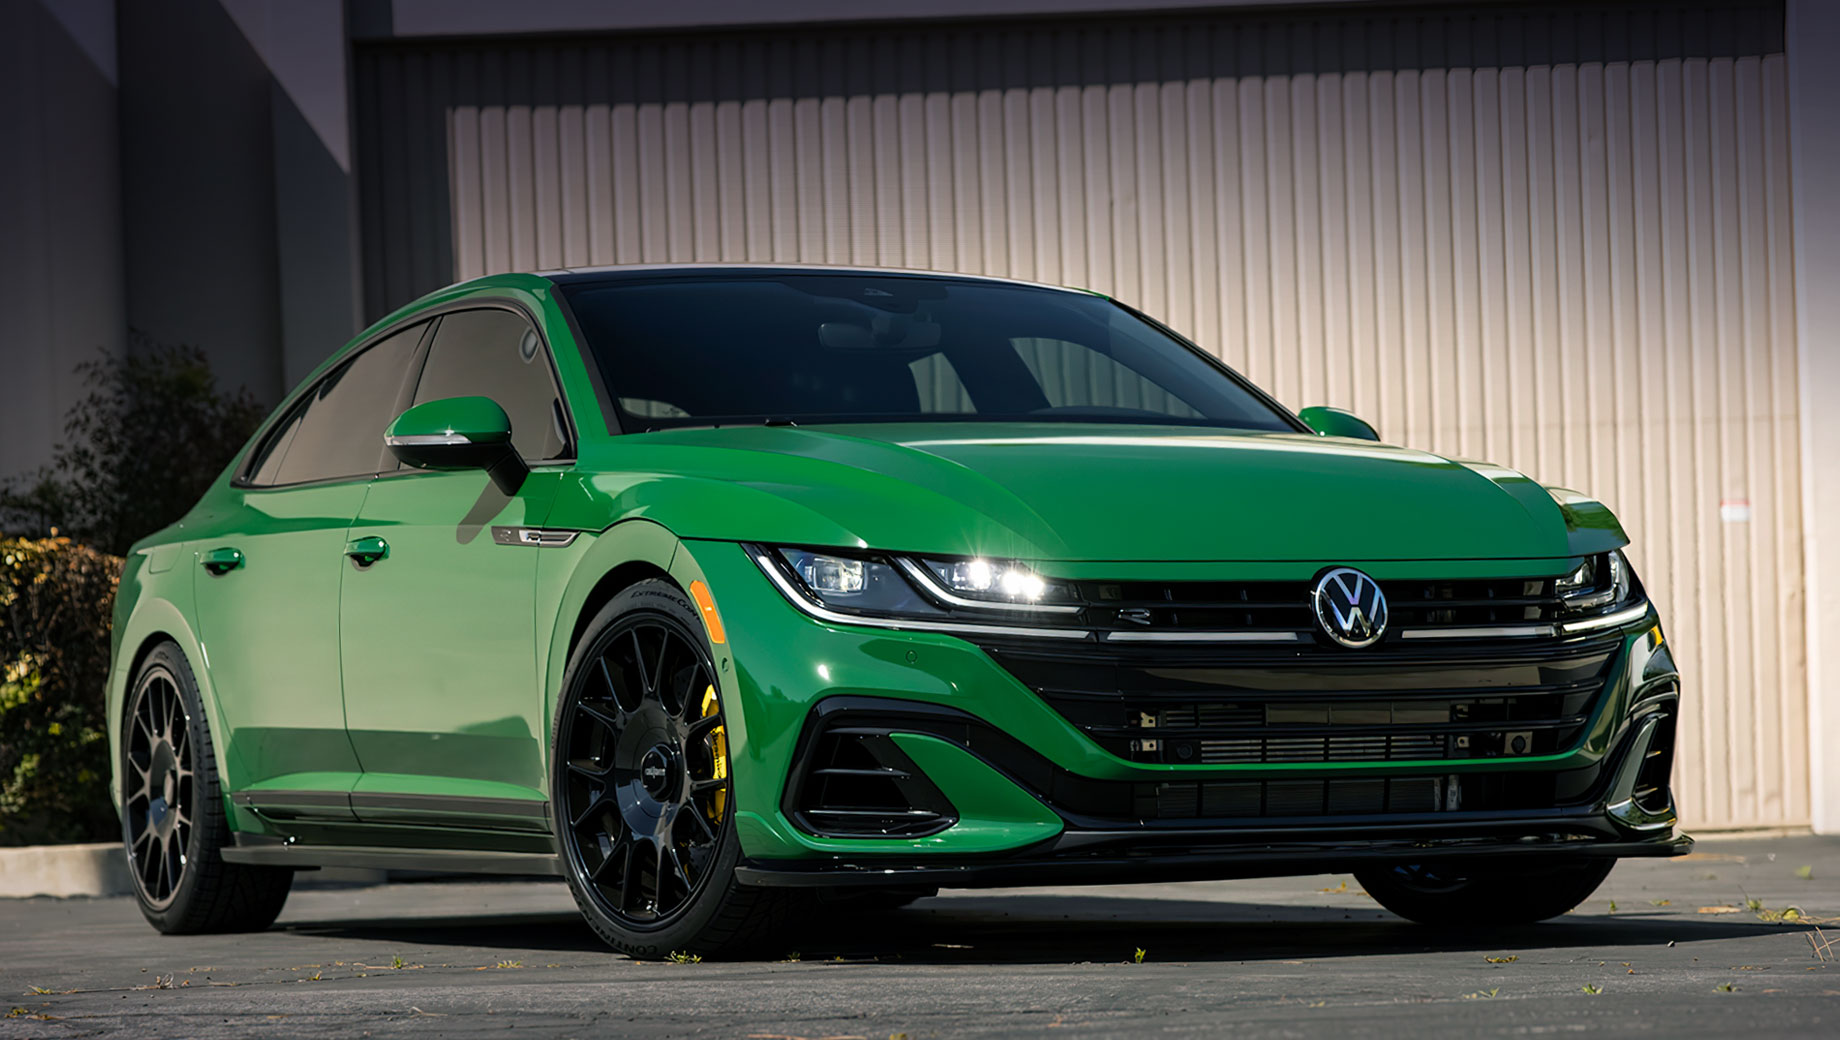 Even in its facelifted form, the Volkswagen Arteon remains rather unpopular in the United States with 3,998 units sold last year and 1,100 in Q1 2021. No wonder the company wants to attract more attention to it by collaborating with tuners.